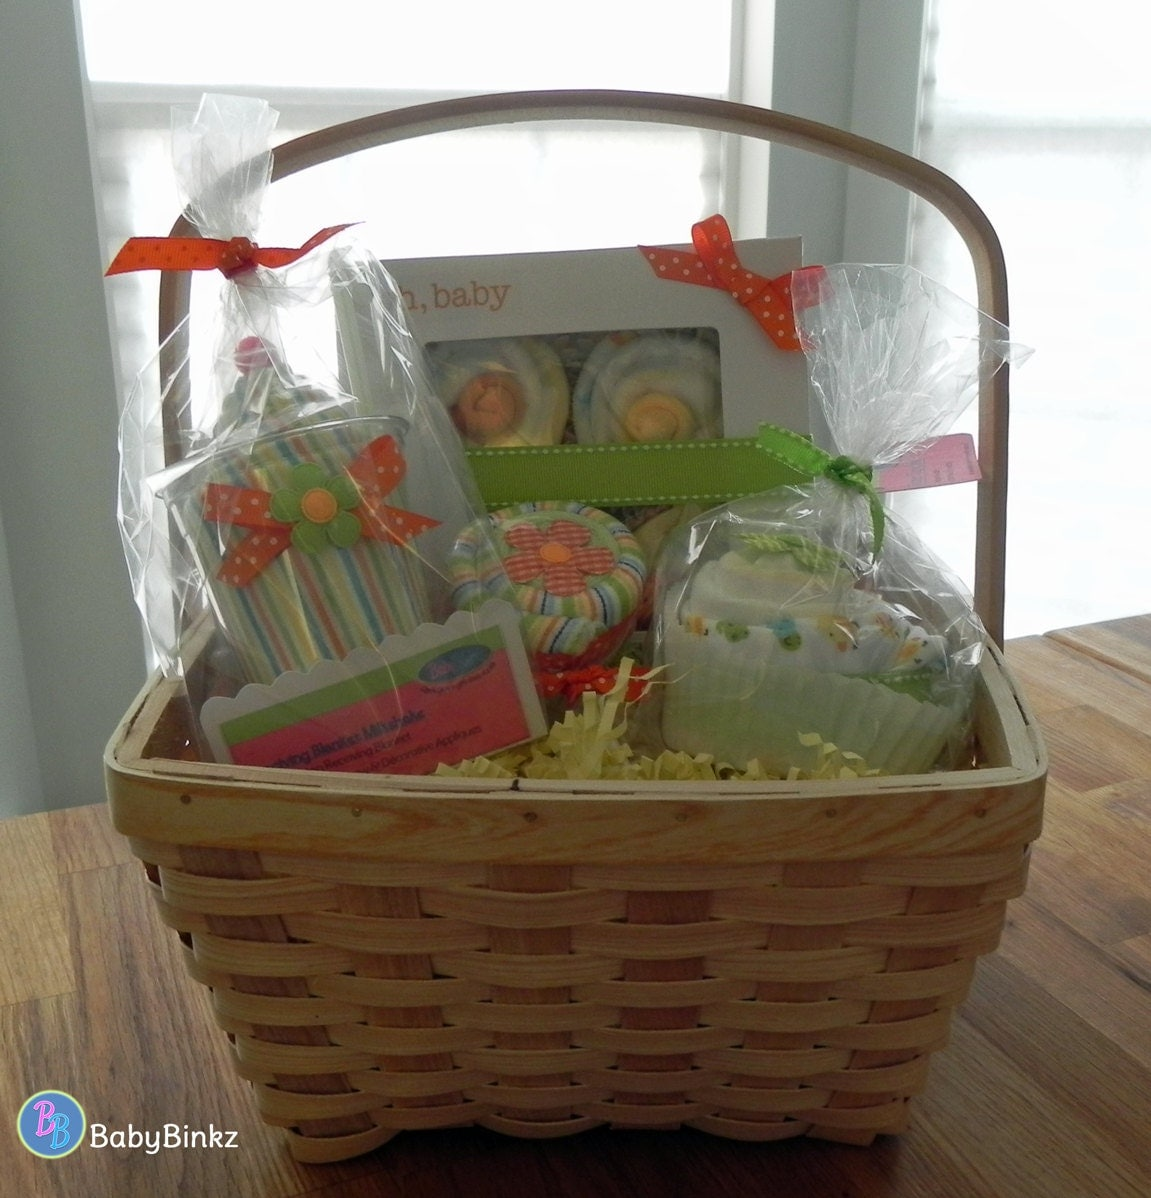 Girl Baby Shower Gift Baskets: Unique Baby Shower Gift Or